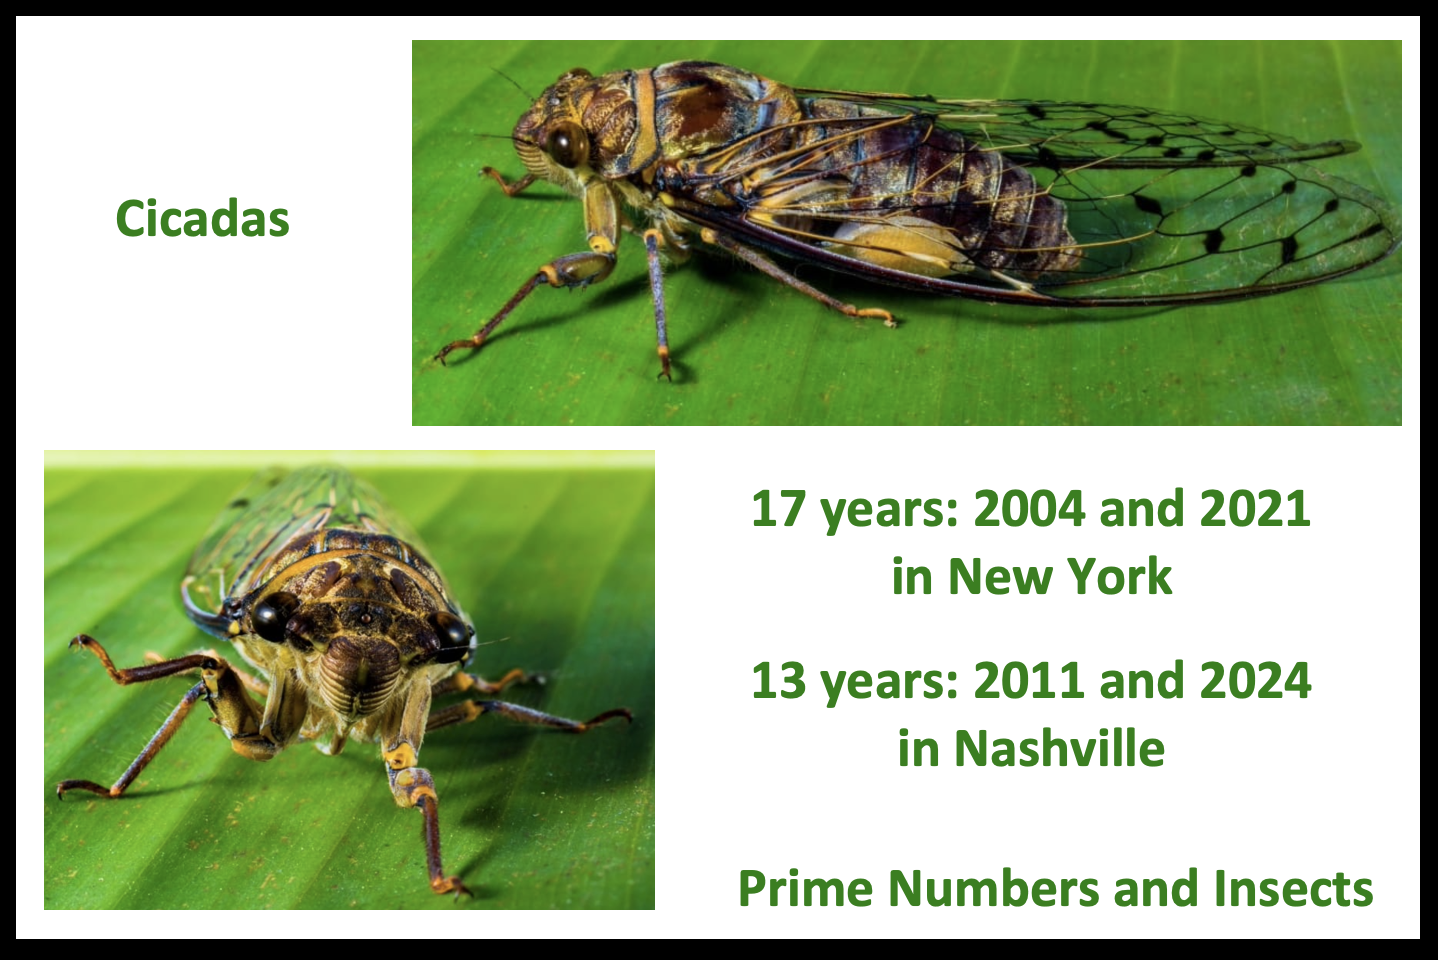 Prime Numbers and Insects